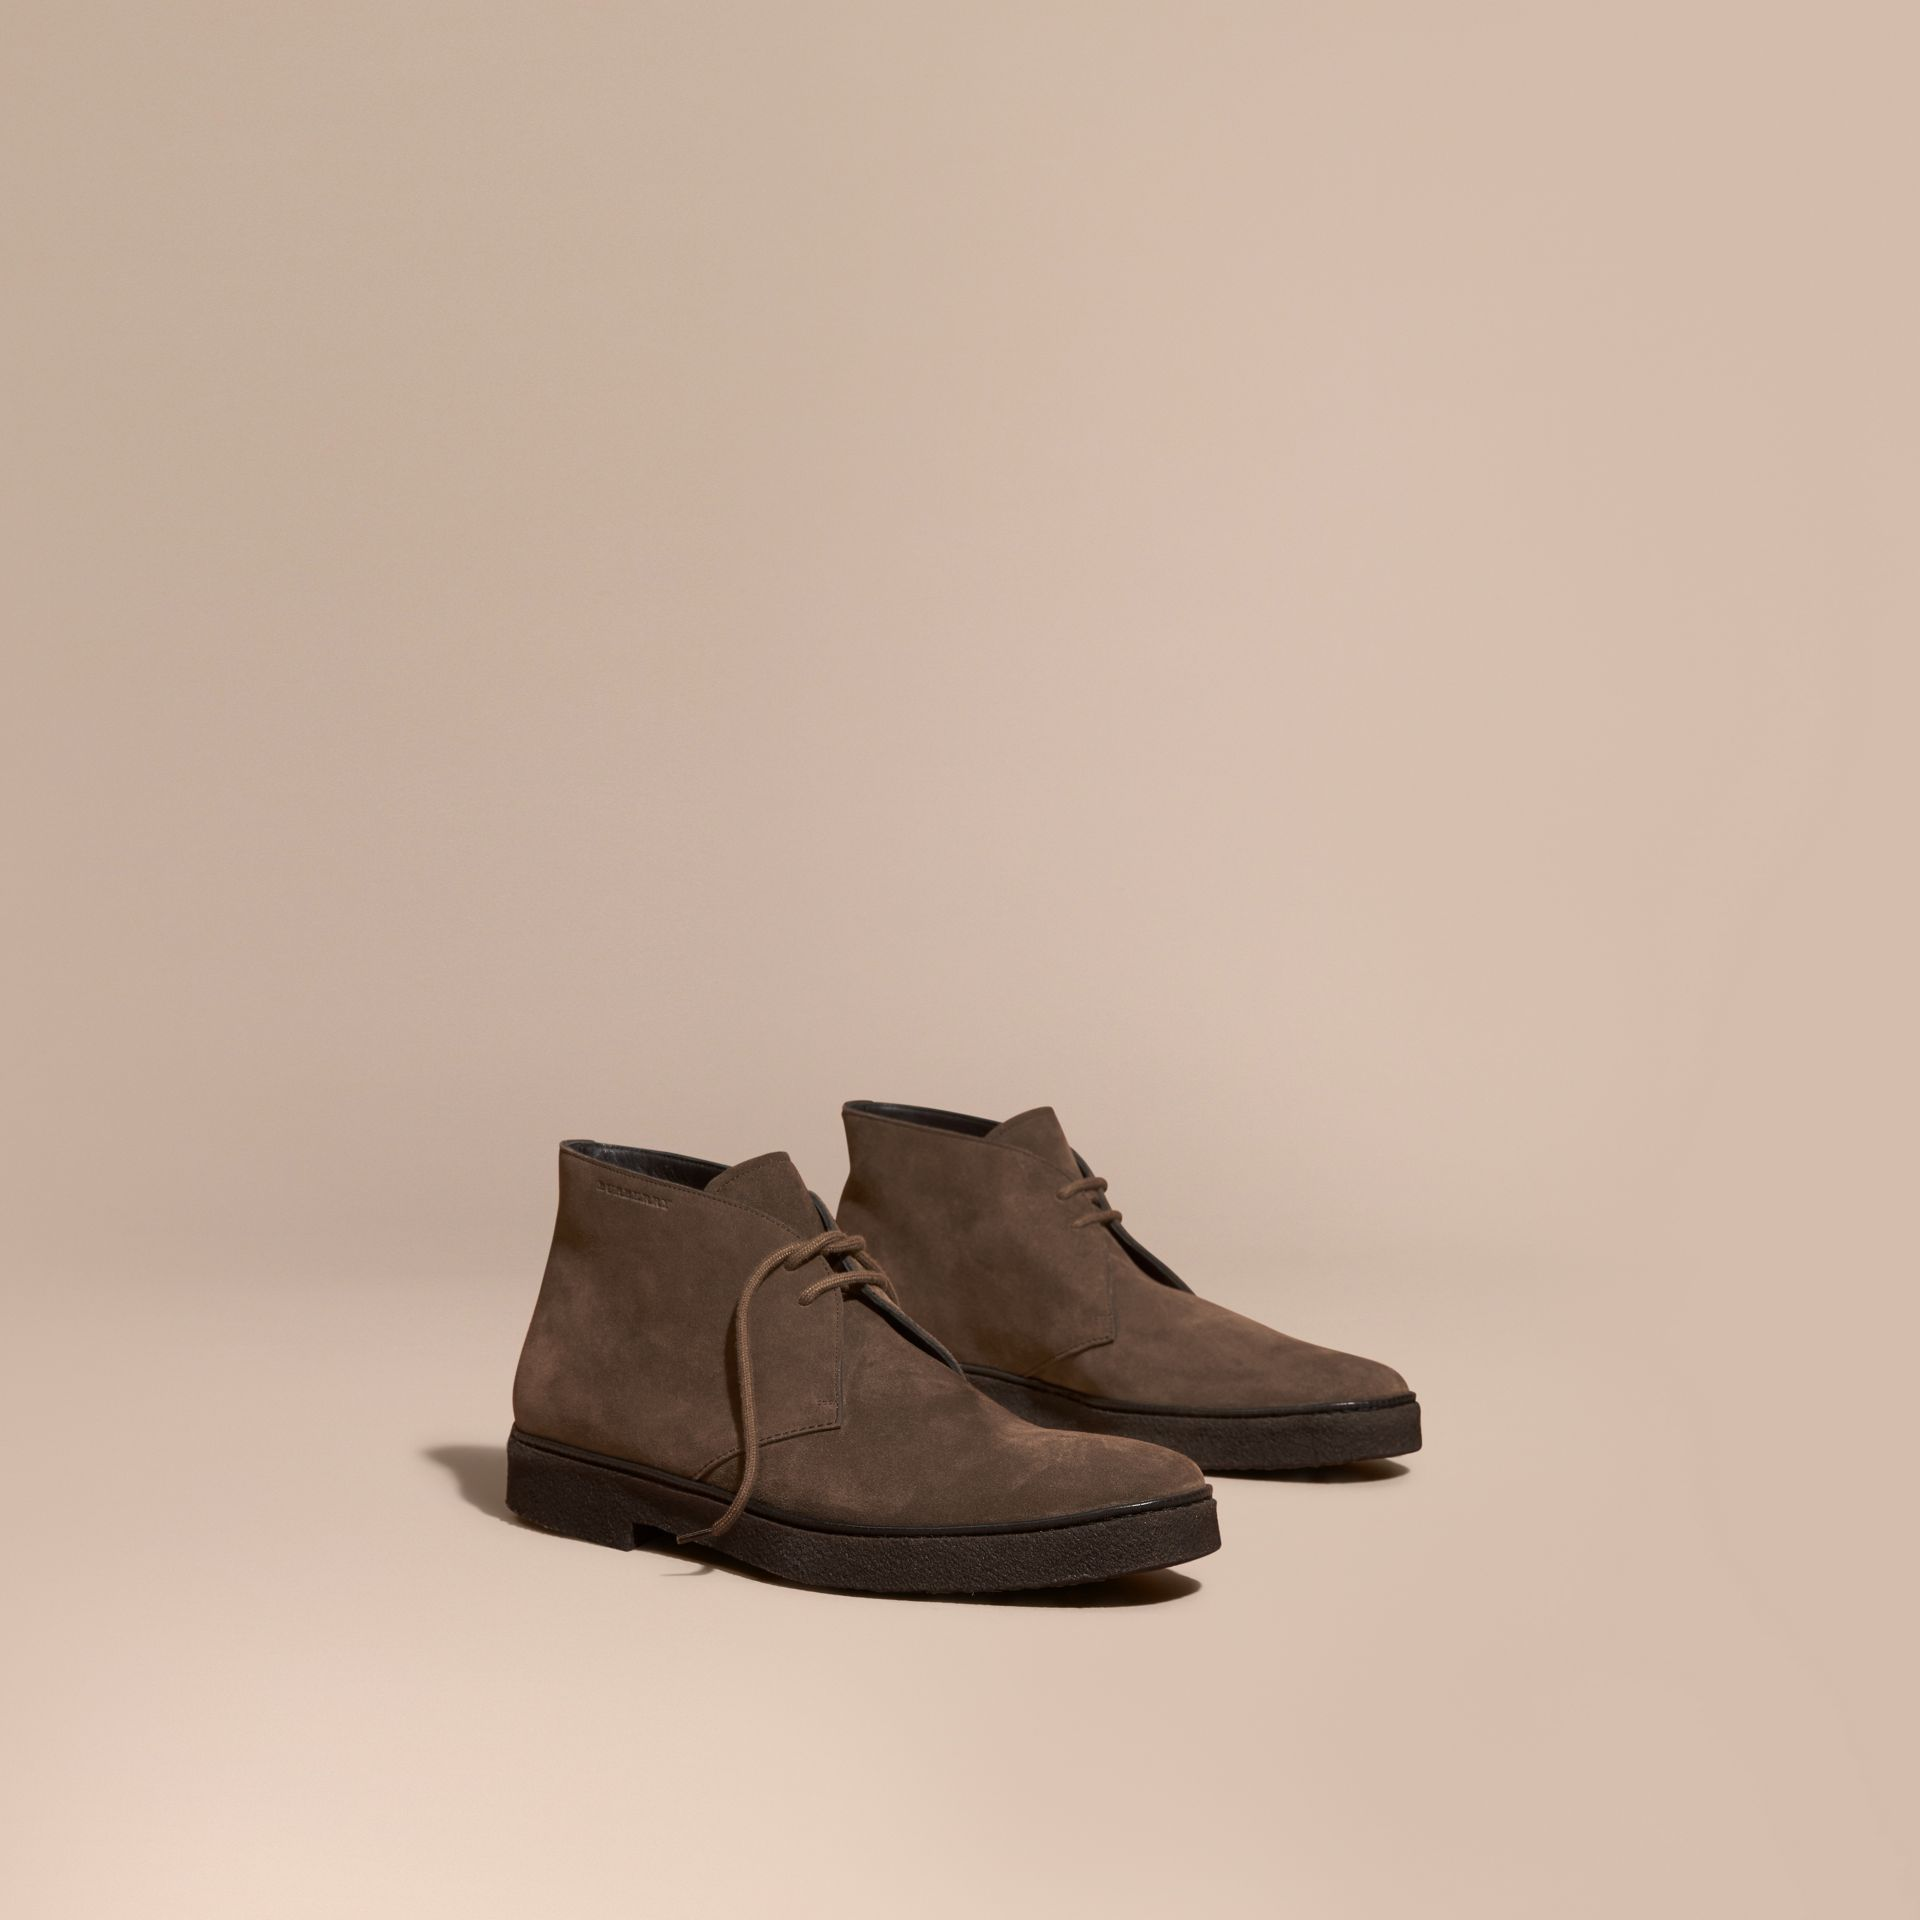 Crepe Sole Suede Desert Boots in Khaki - gallery image 1